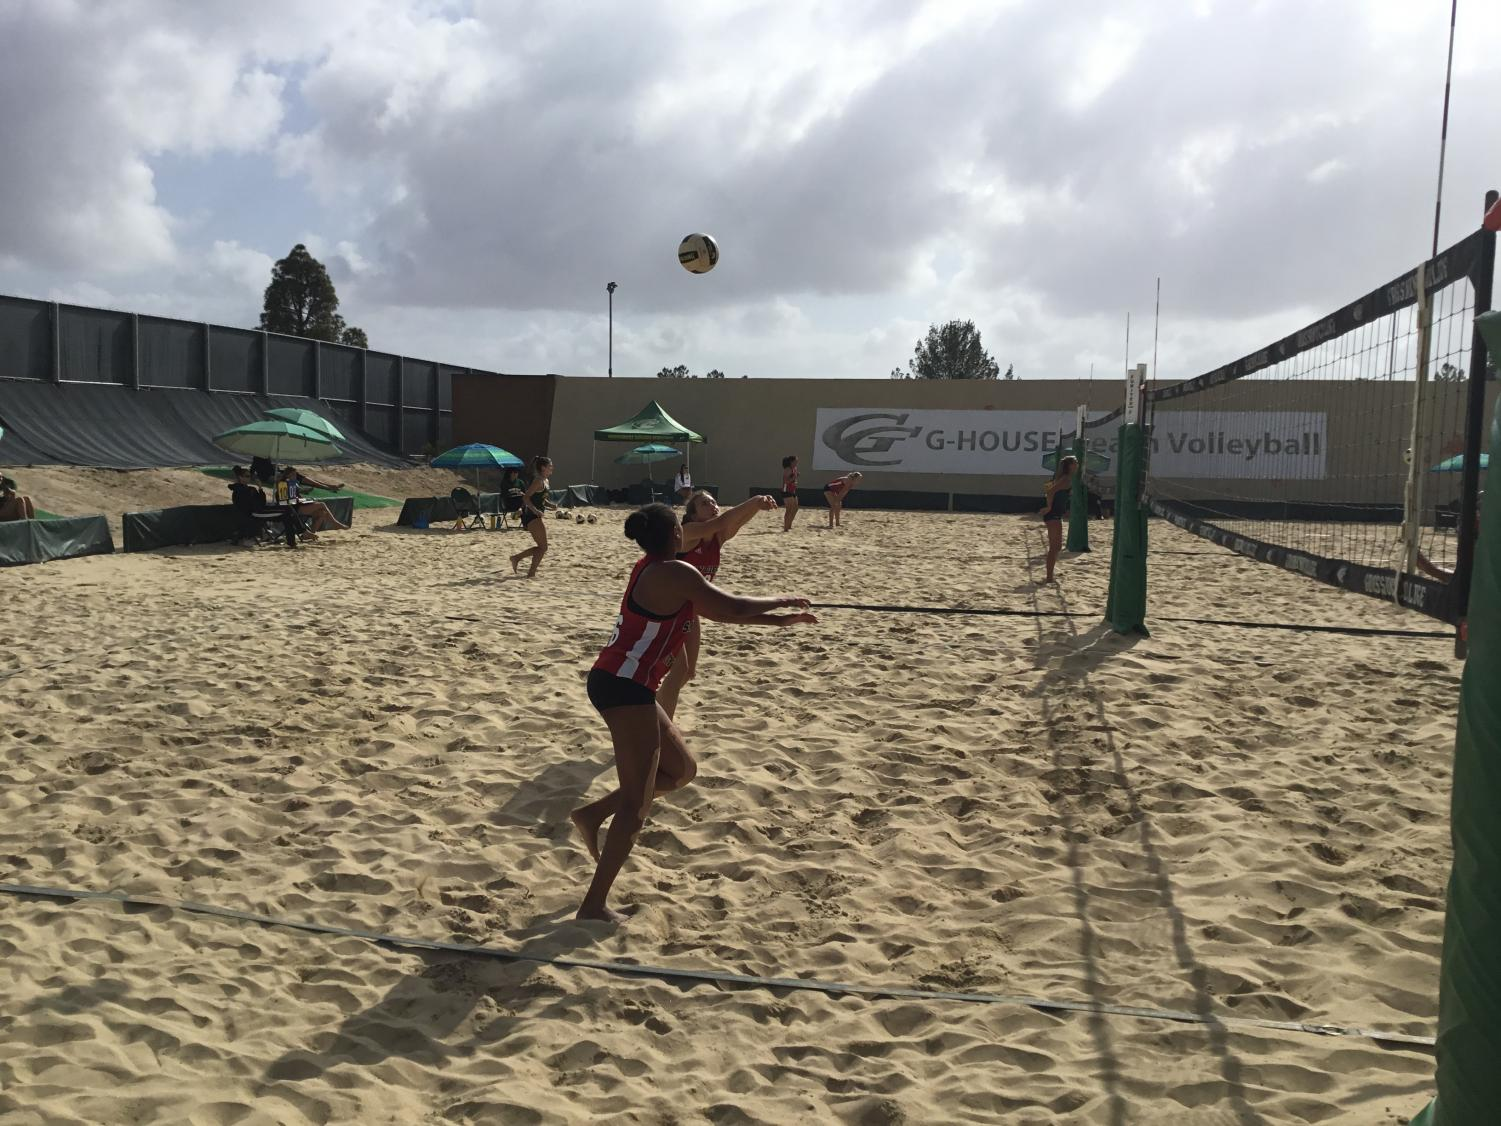 San Diego City College Beach Volleyball team played two matches at Grossmont on Friday. By Sonny Garibay